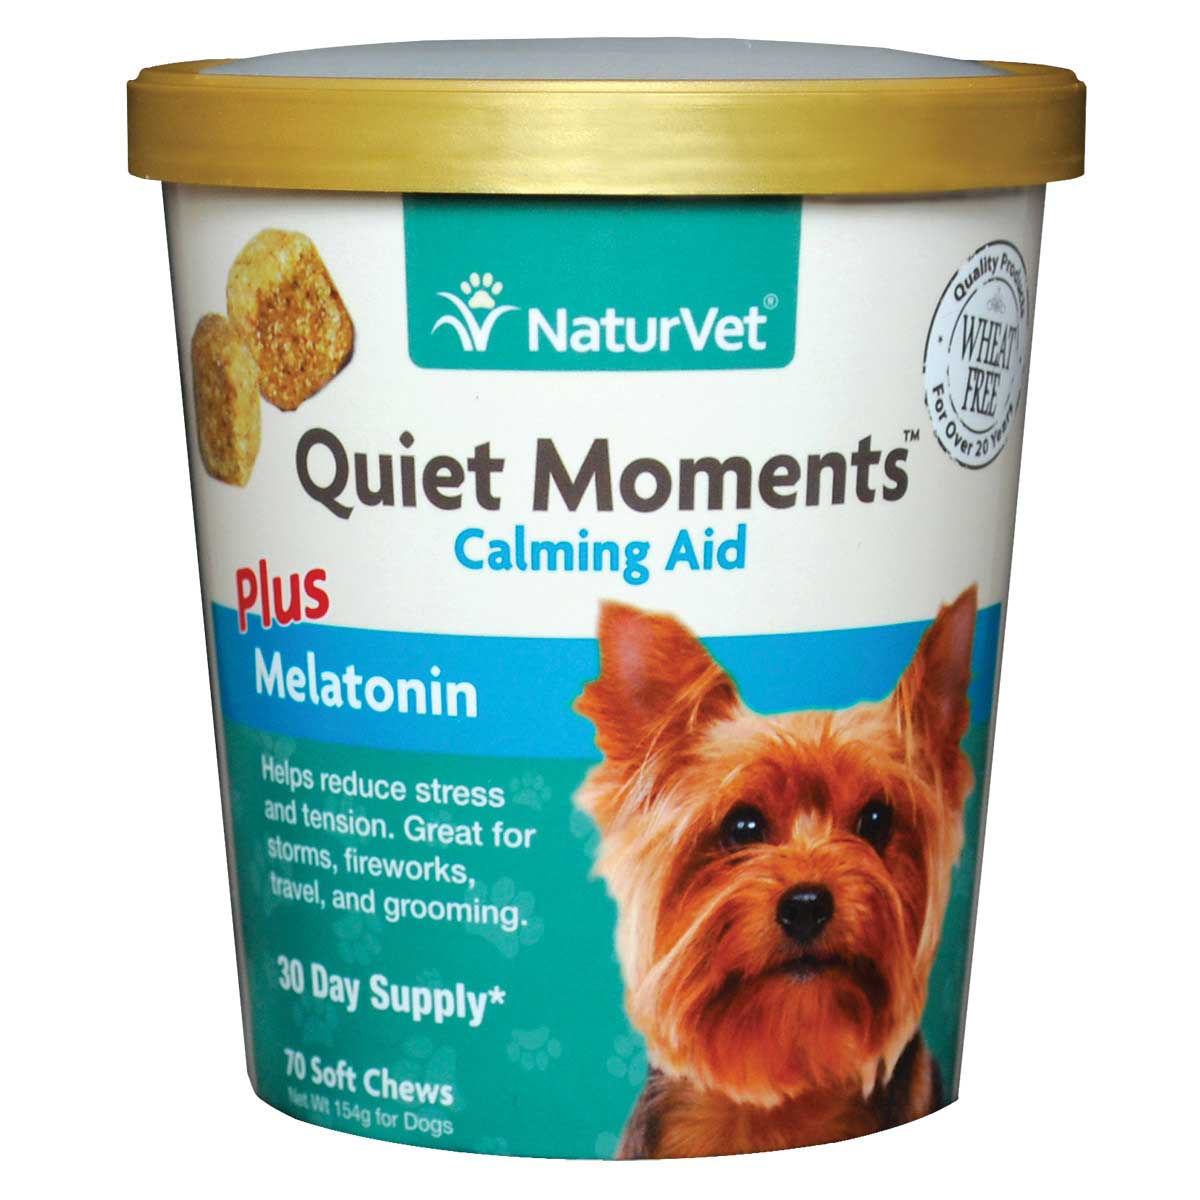 NaturVet Quiet Moments Calming Aid Plus Melatonin Soft Chew for Dogs - 70 Count